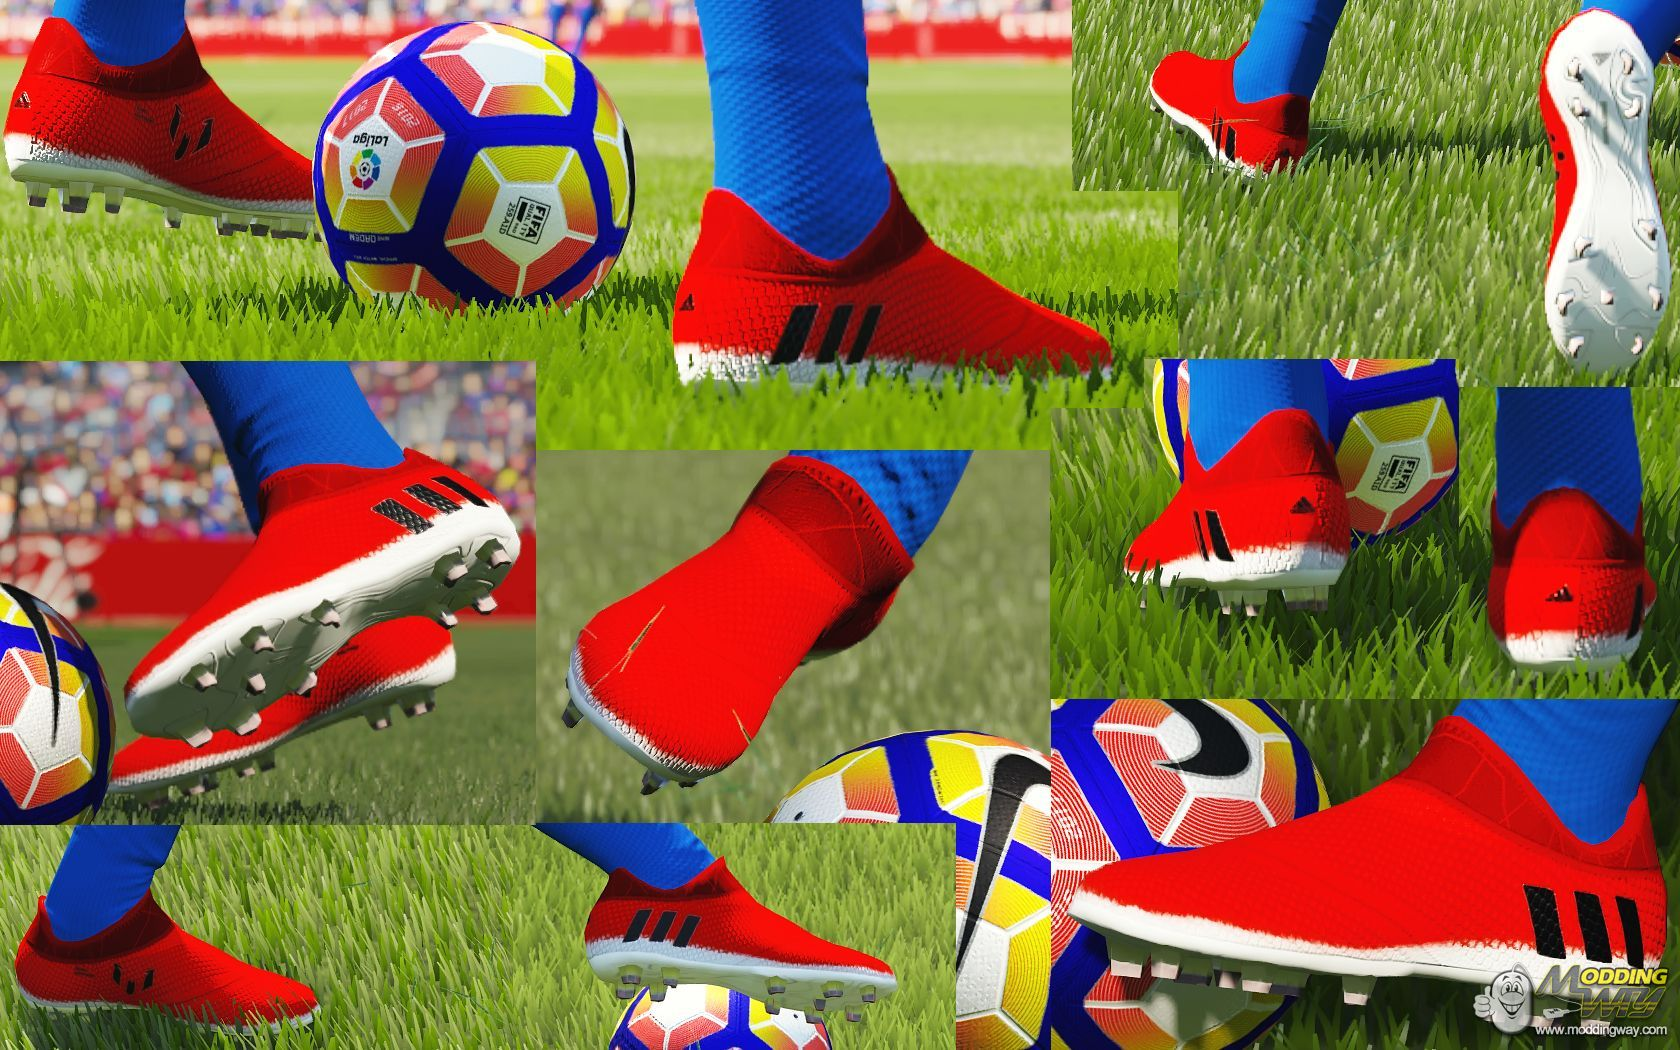 Escarpado director bronce  Adidas Messi 16+ Pureagility Red Limit by Barrysun (Nabo78 editing) - FIFA  16 at ModdingWay